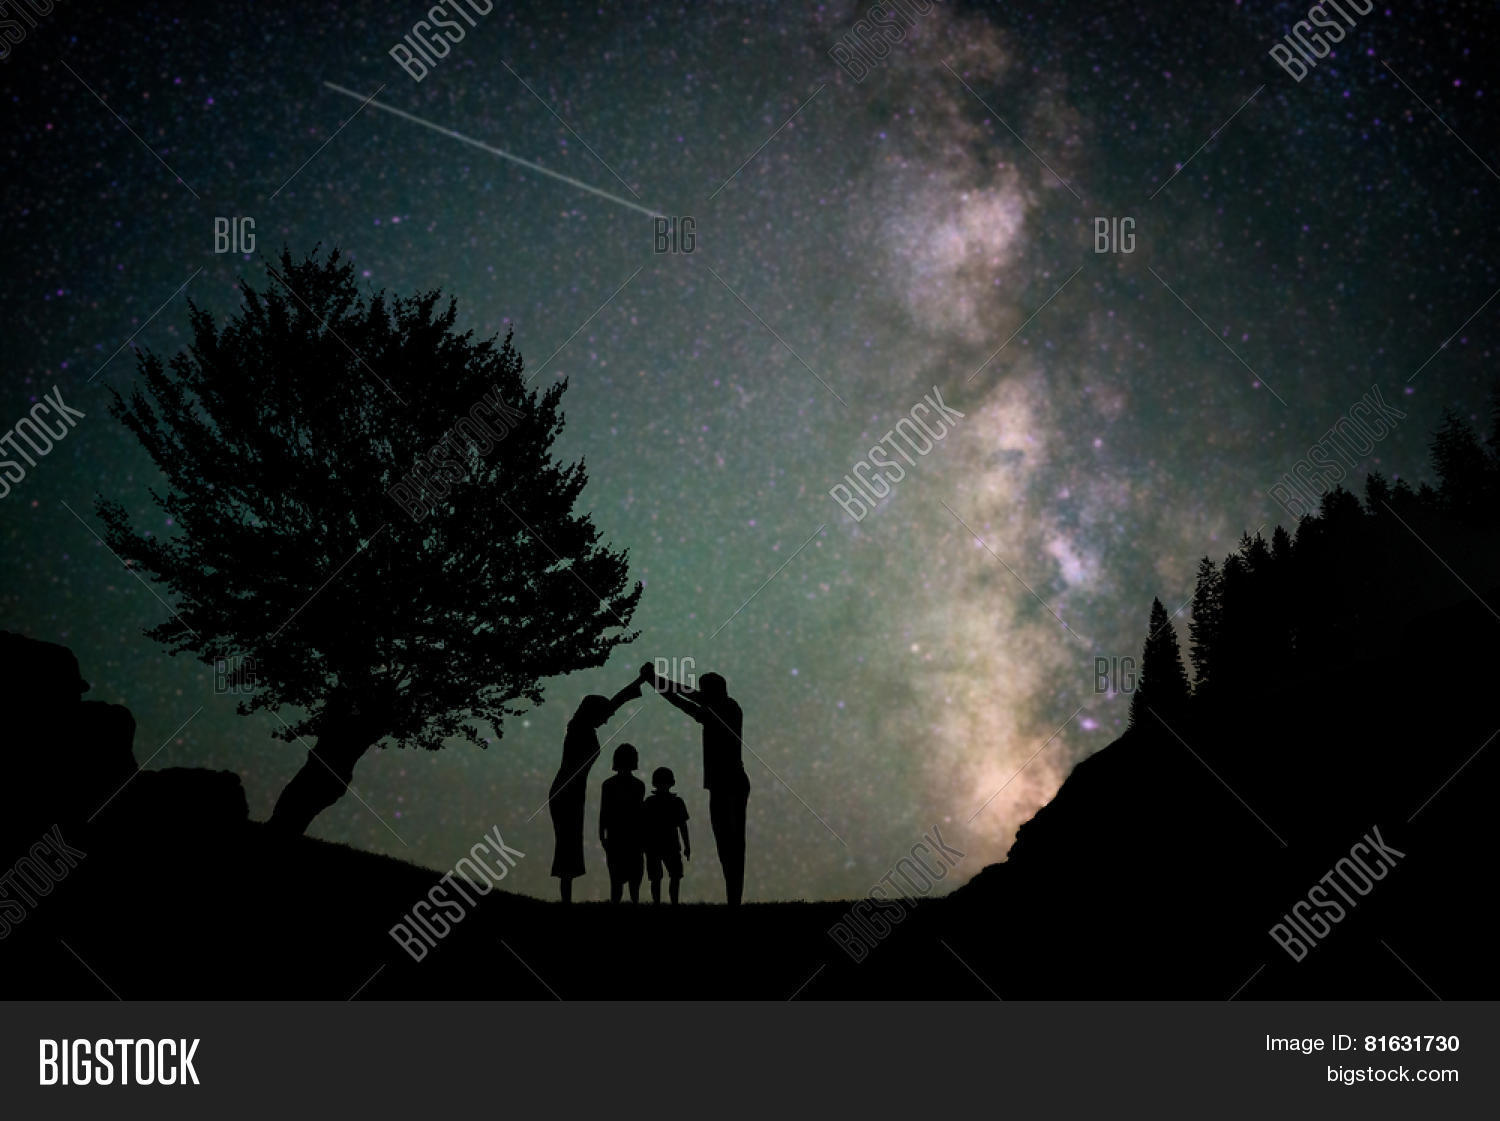 Happy Family Silhouette With Milky Way And Beautiful Night Sky Full Of Stars In Background Making